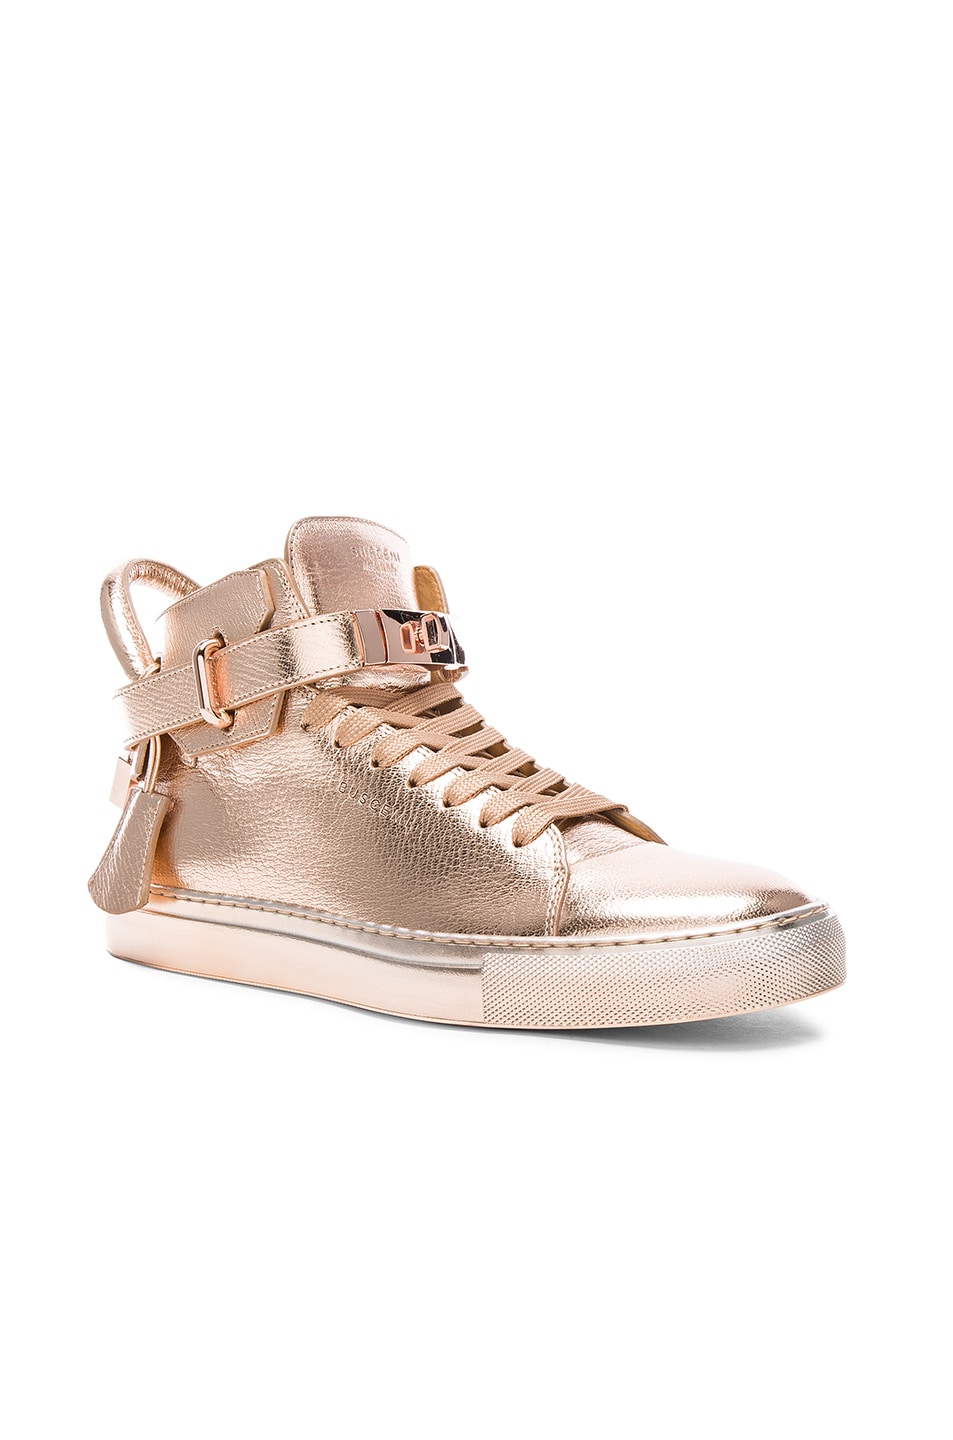 Image 1 of Buscemi 100MM Leather Sneakers in Rose Gold